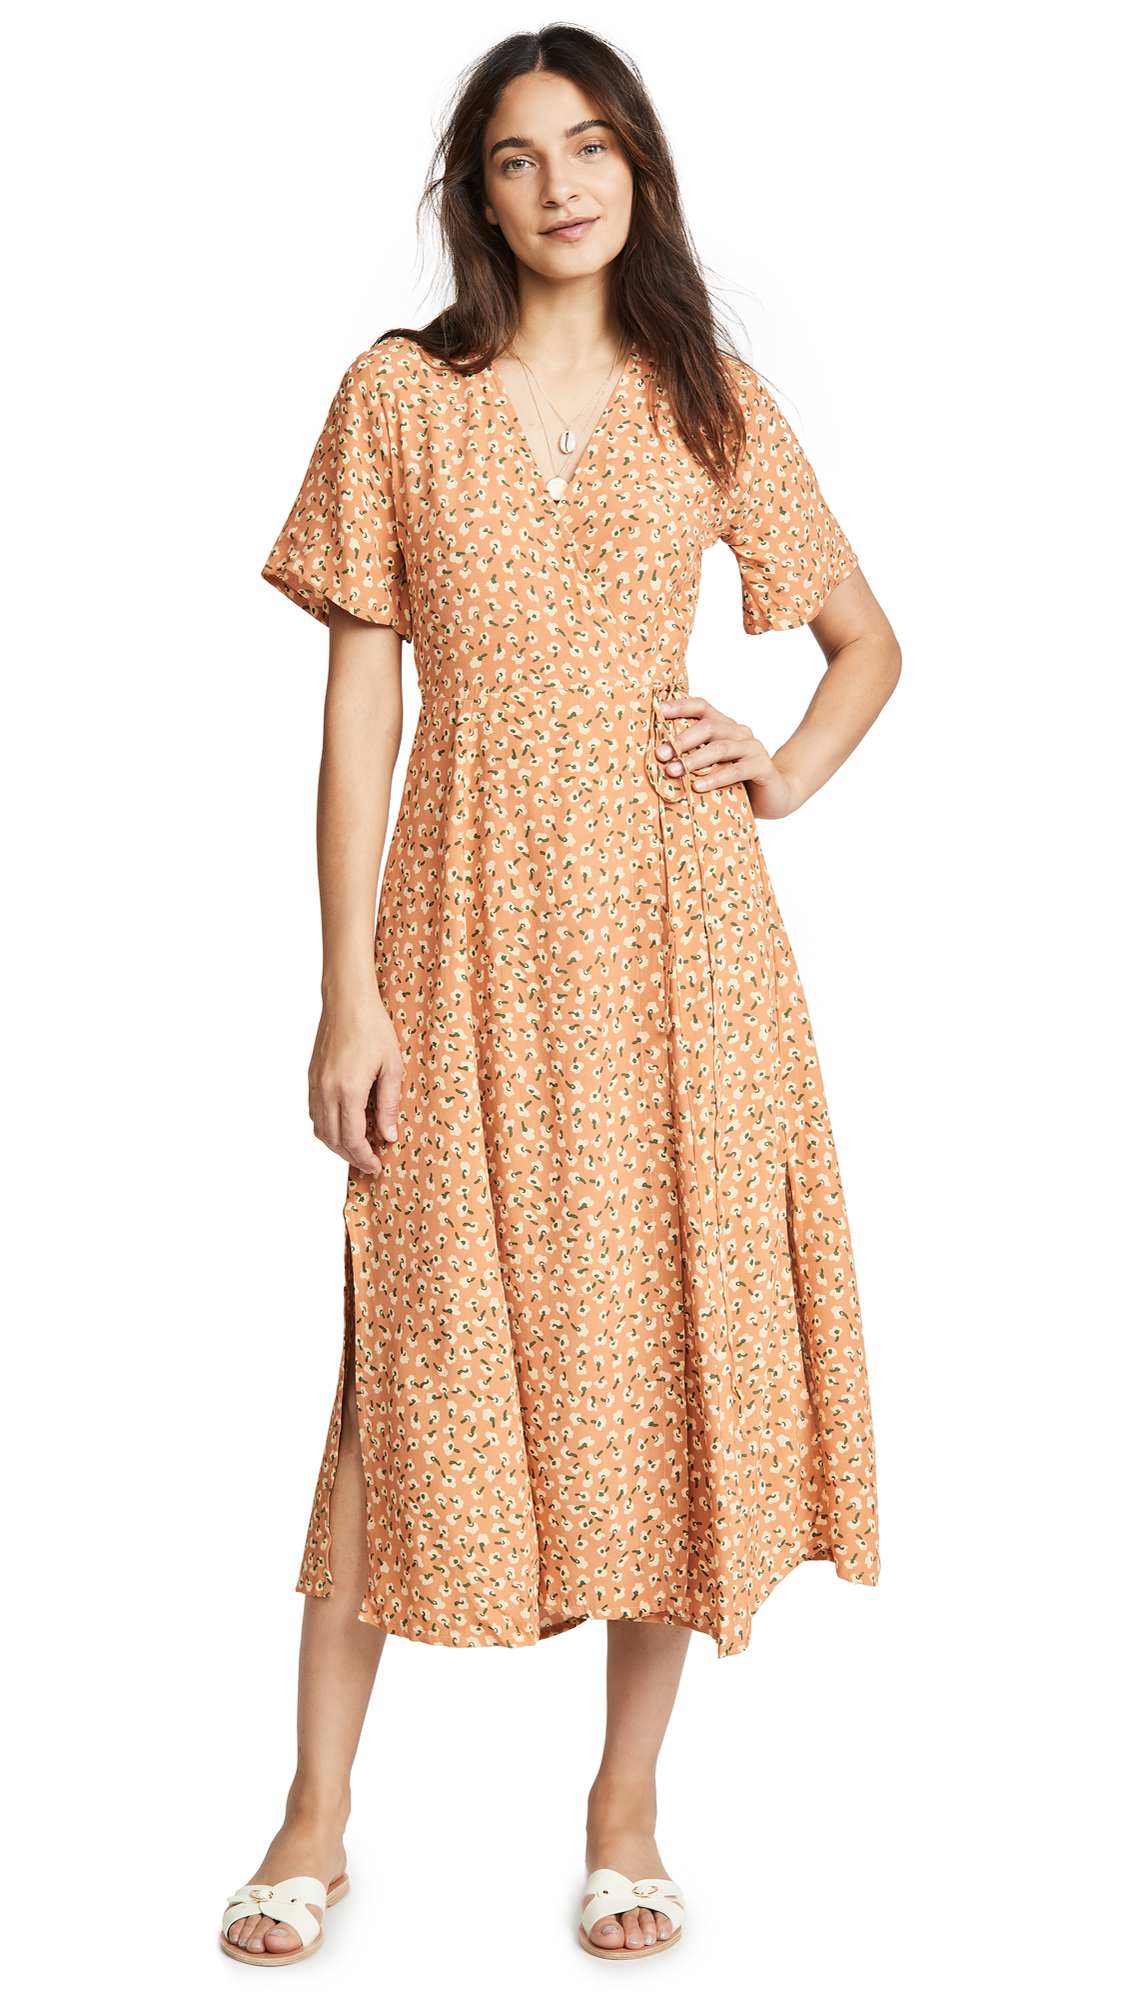 FAITHFULL THE BRAND Leila Wrap Dress In Vintage Blossom